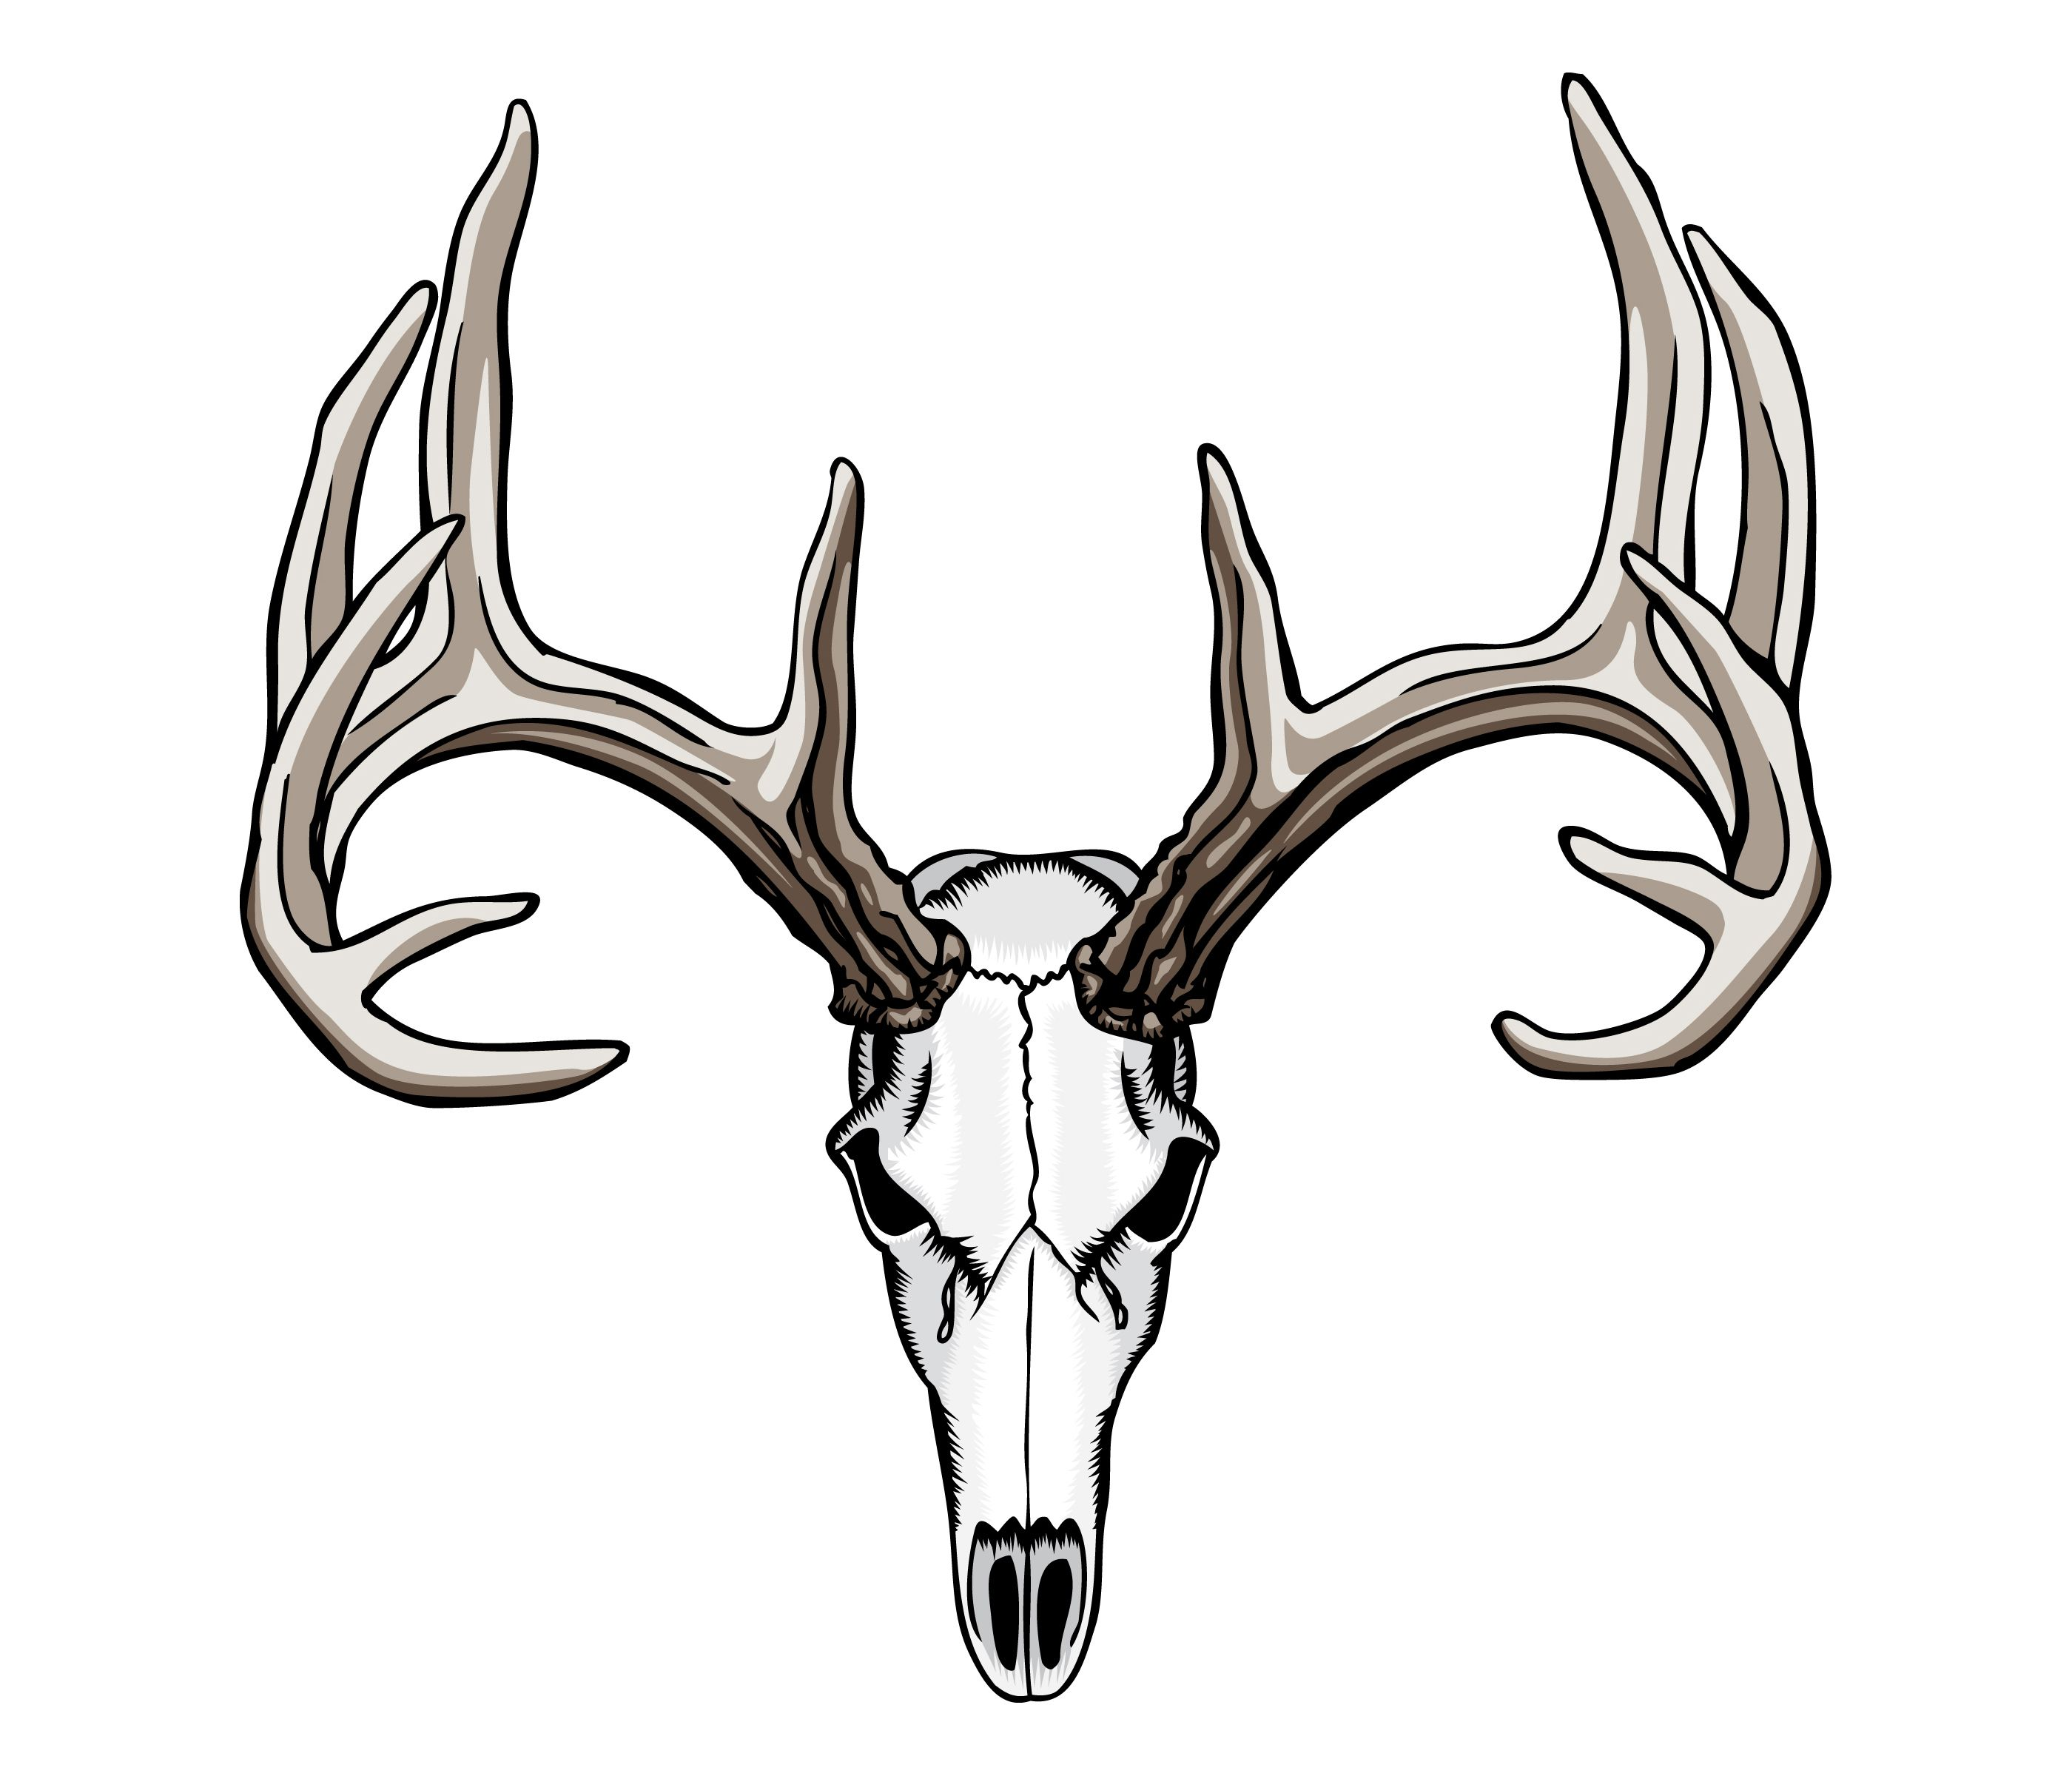 Whitetail Deer Skull Tattoos Deer skull tattoos, Deer